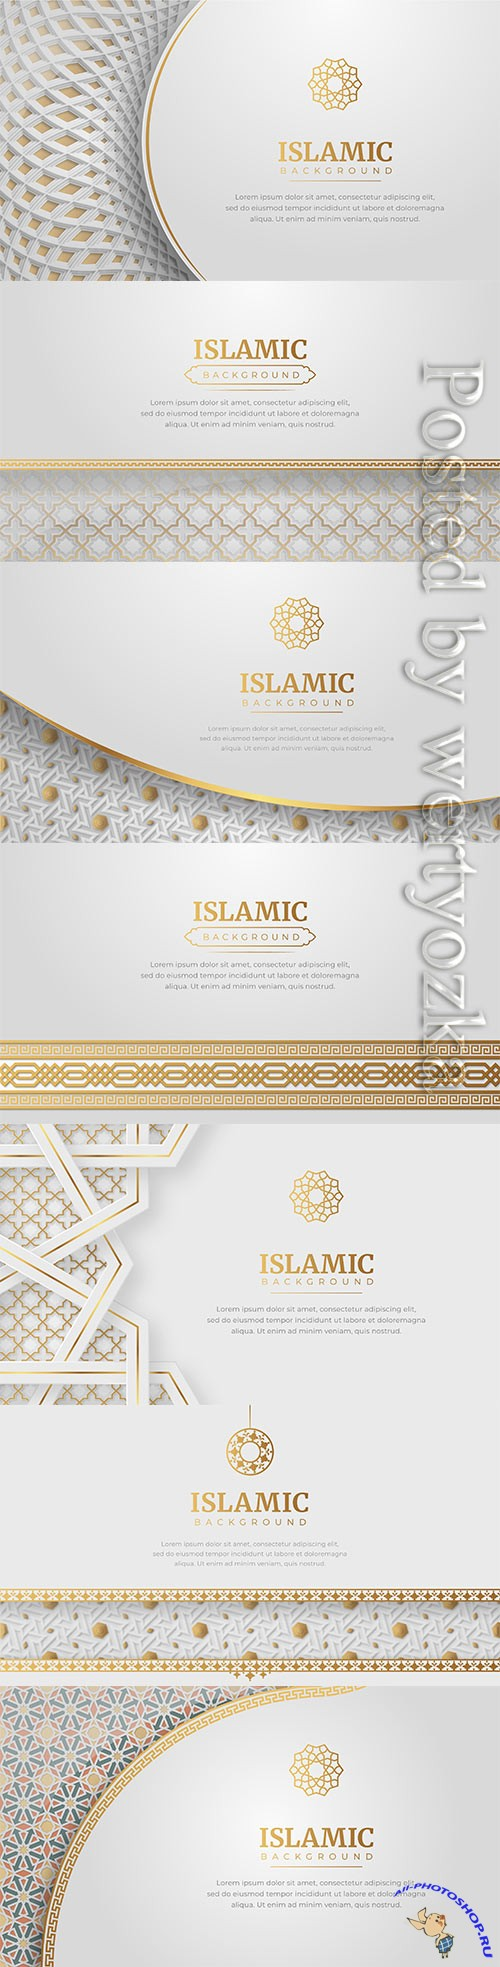 Ramadan kareem, eid mubarak islamic arabic luxury abstract background